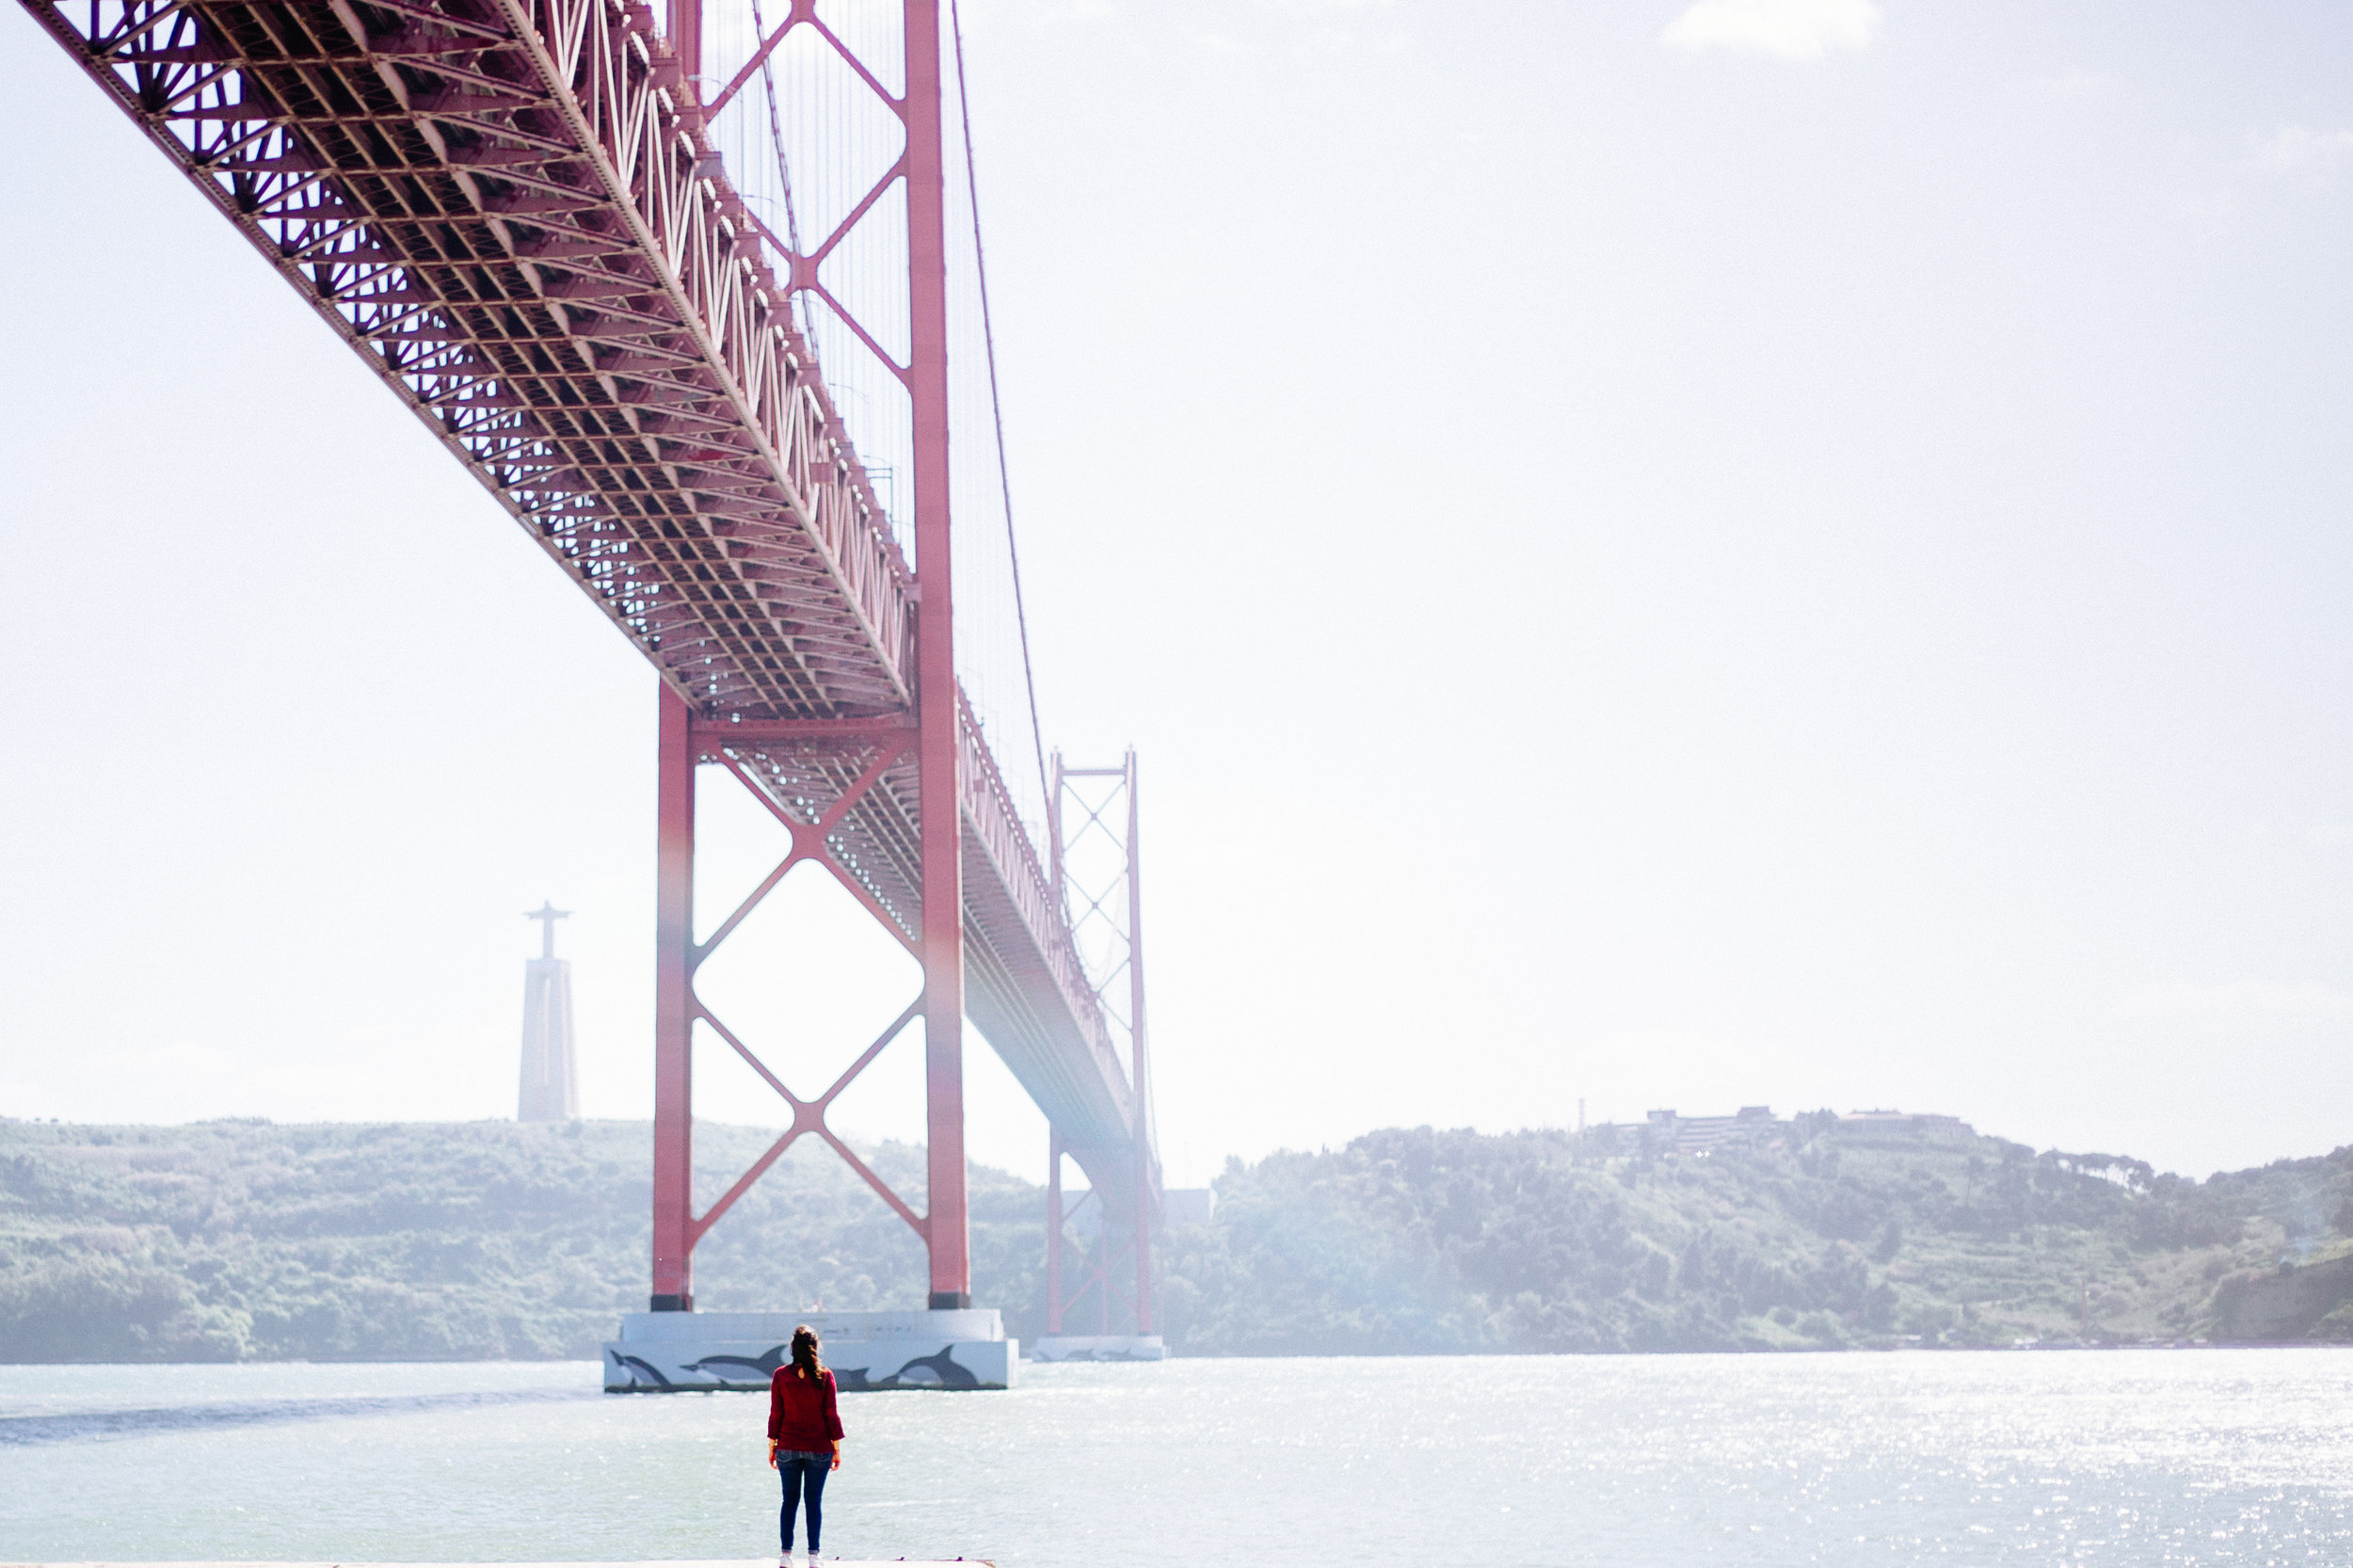 25 de Abril bridge and the Sanctuary of Christ the King looking over the city of Lisbon